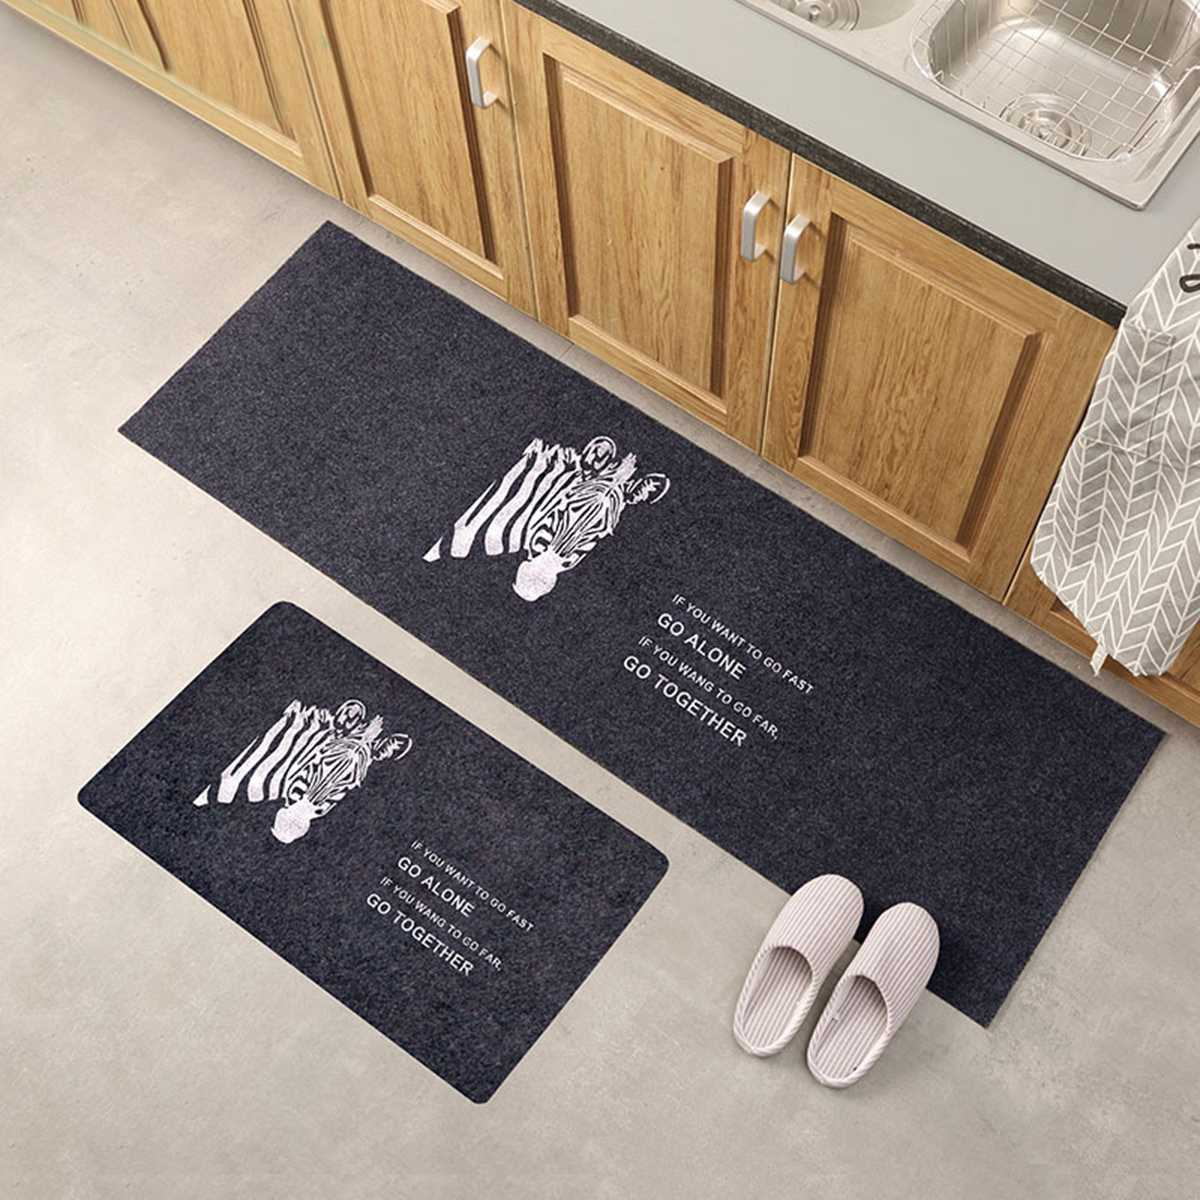 Us 6 01 17 Off Washable Non Slip Home Kitchen Floor Mat Machine Floor Rug Mat Door Runner Hallway Carpet For Bedroom Bathroom Balcony Carpet In Mat